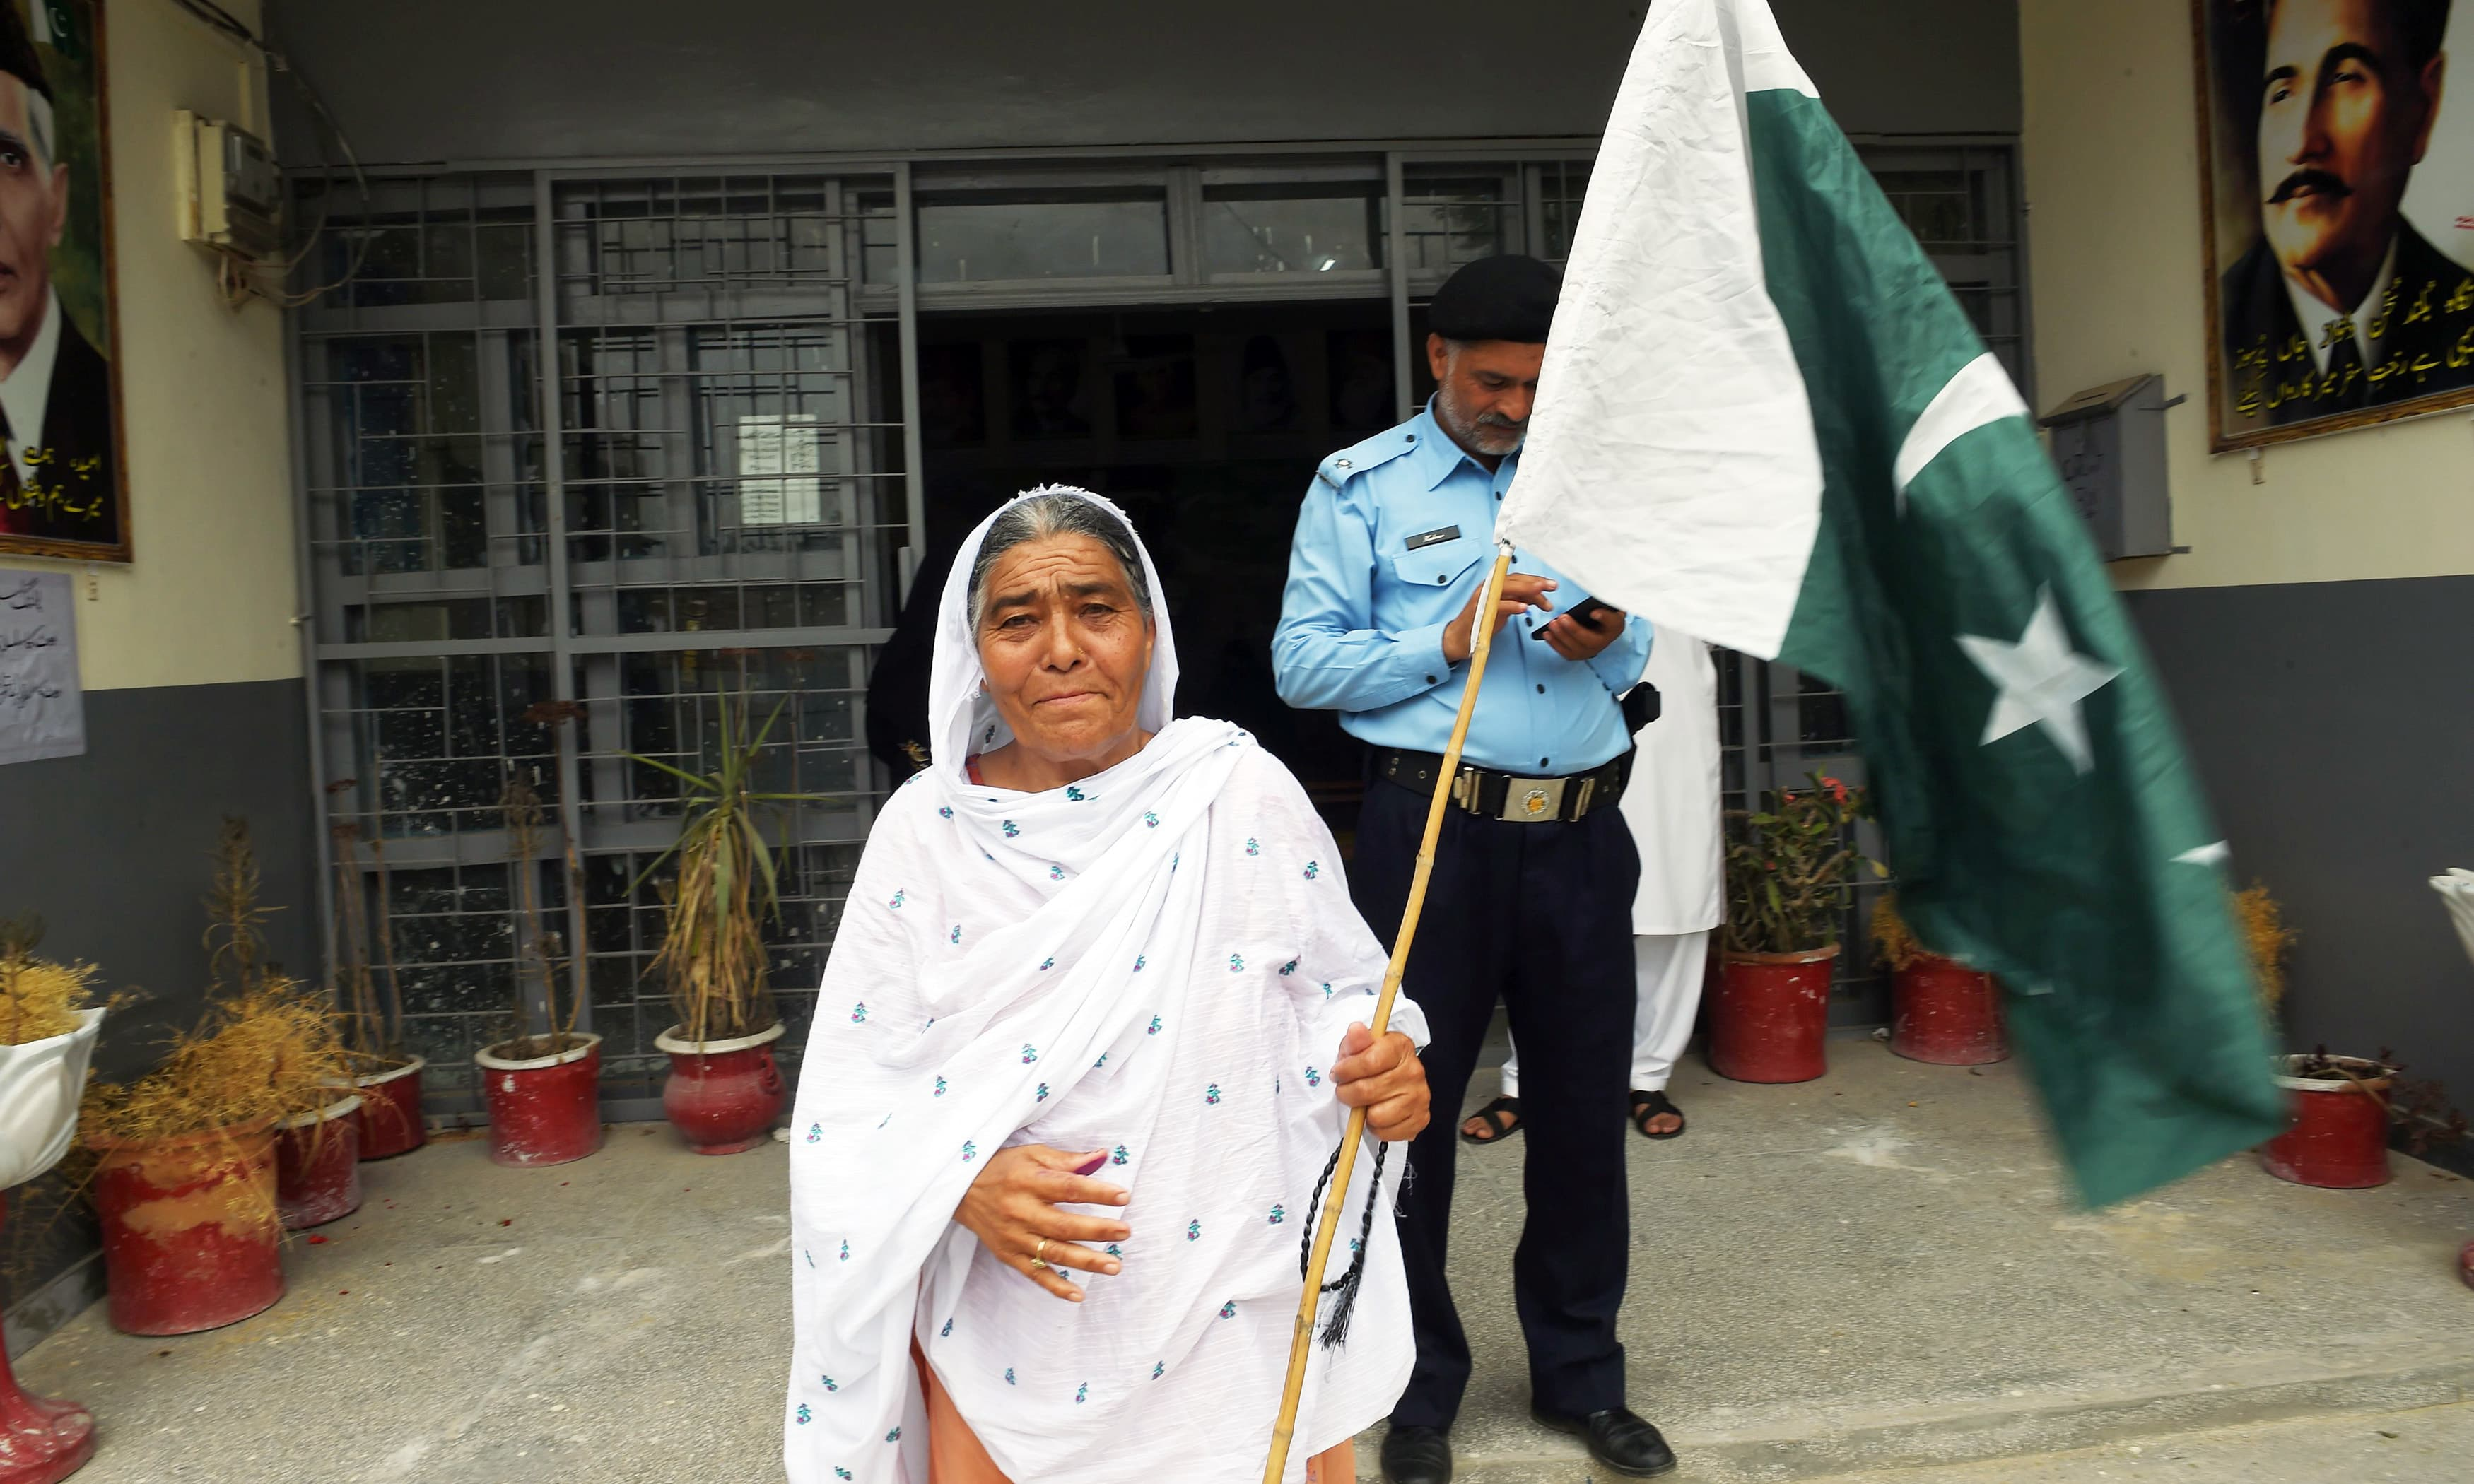 A woman walks out of a polling station holding flag after casting her ballot in Rawalpindi. —AFP